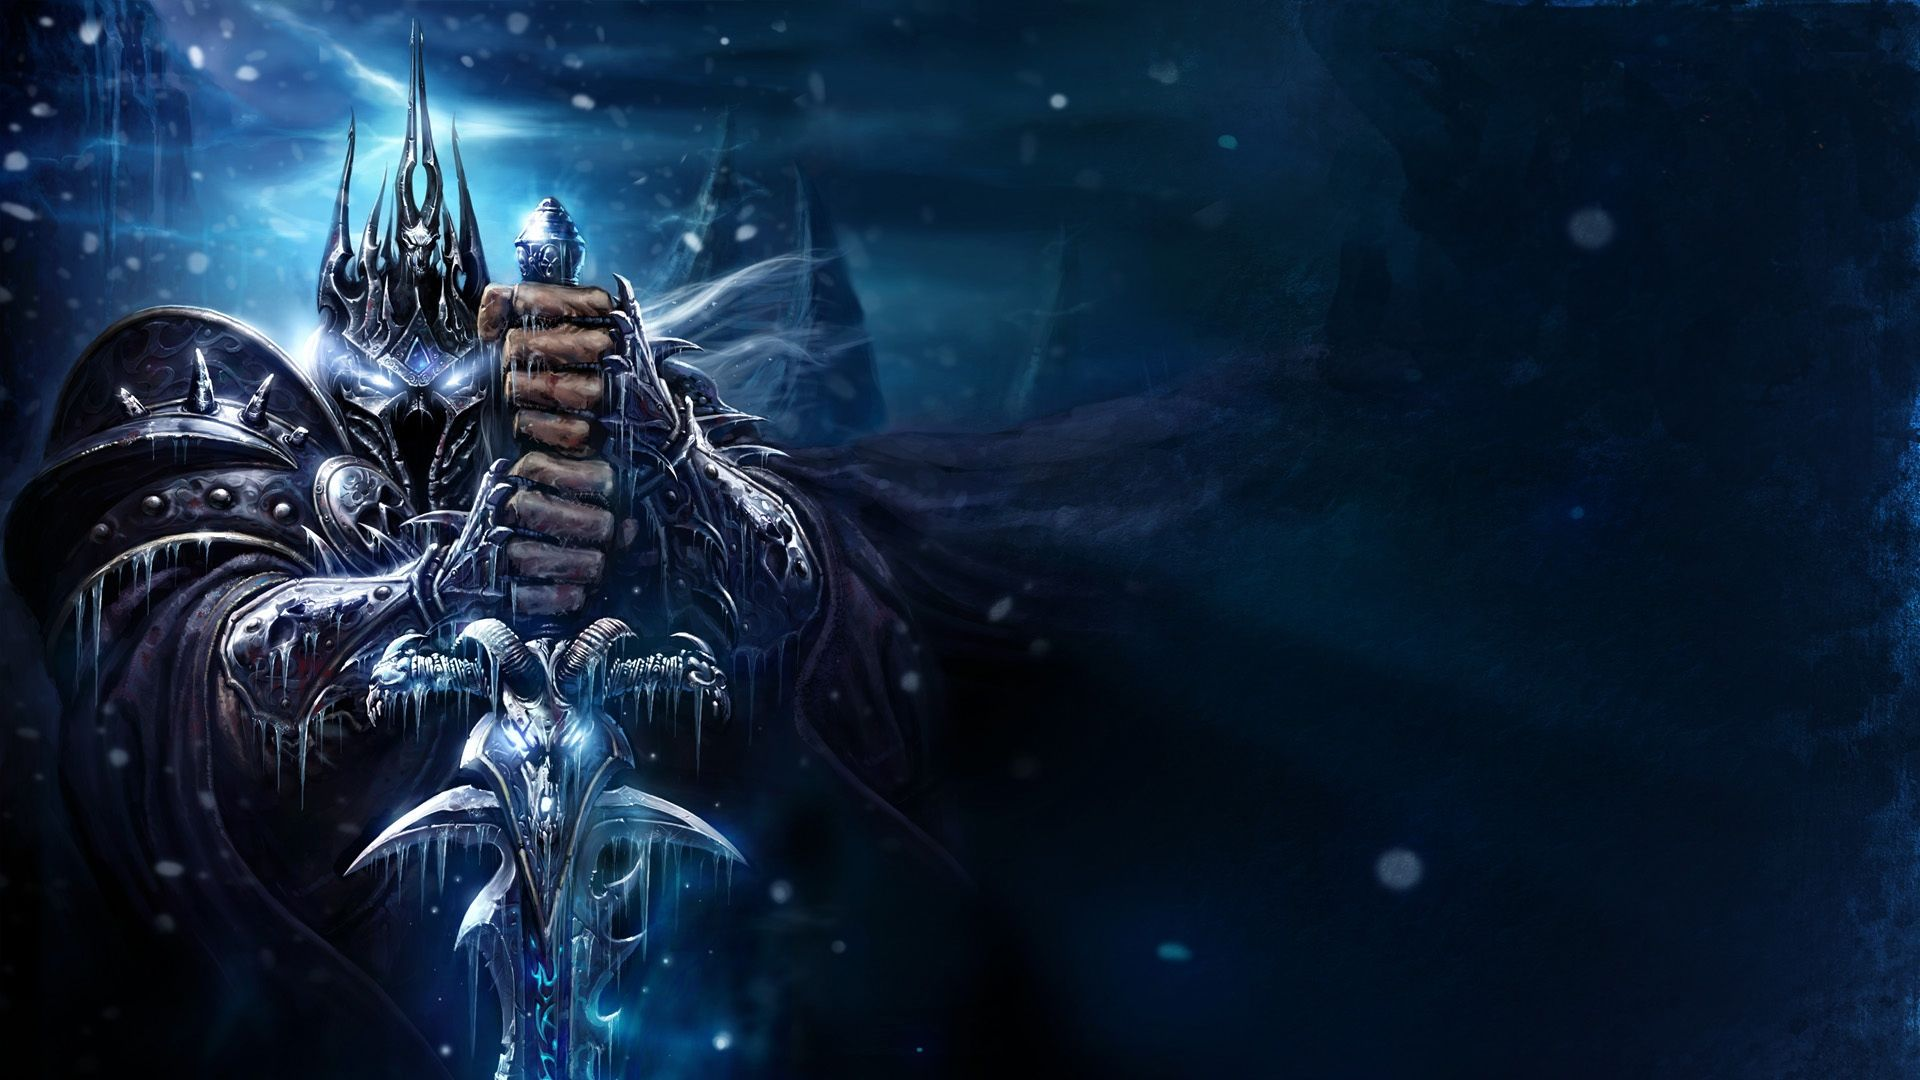 Full hd p lich king wallpapers hd desktop backgrounds hd full hd p lich king wallpapers hd desktop backgrounds voltagebd Choice Image